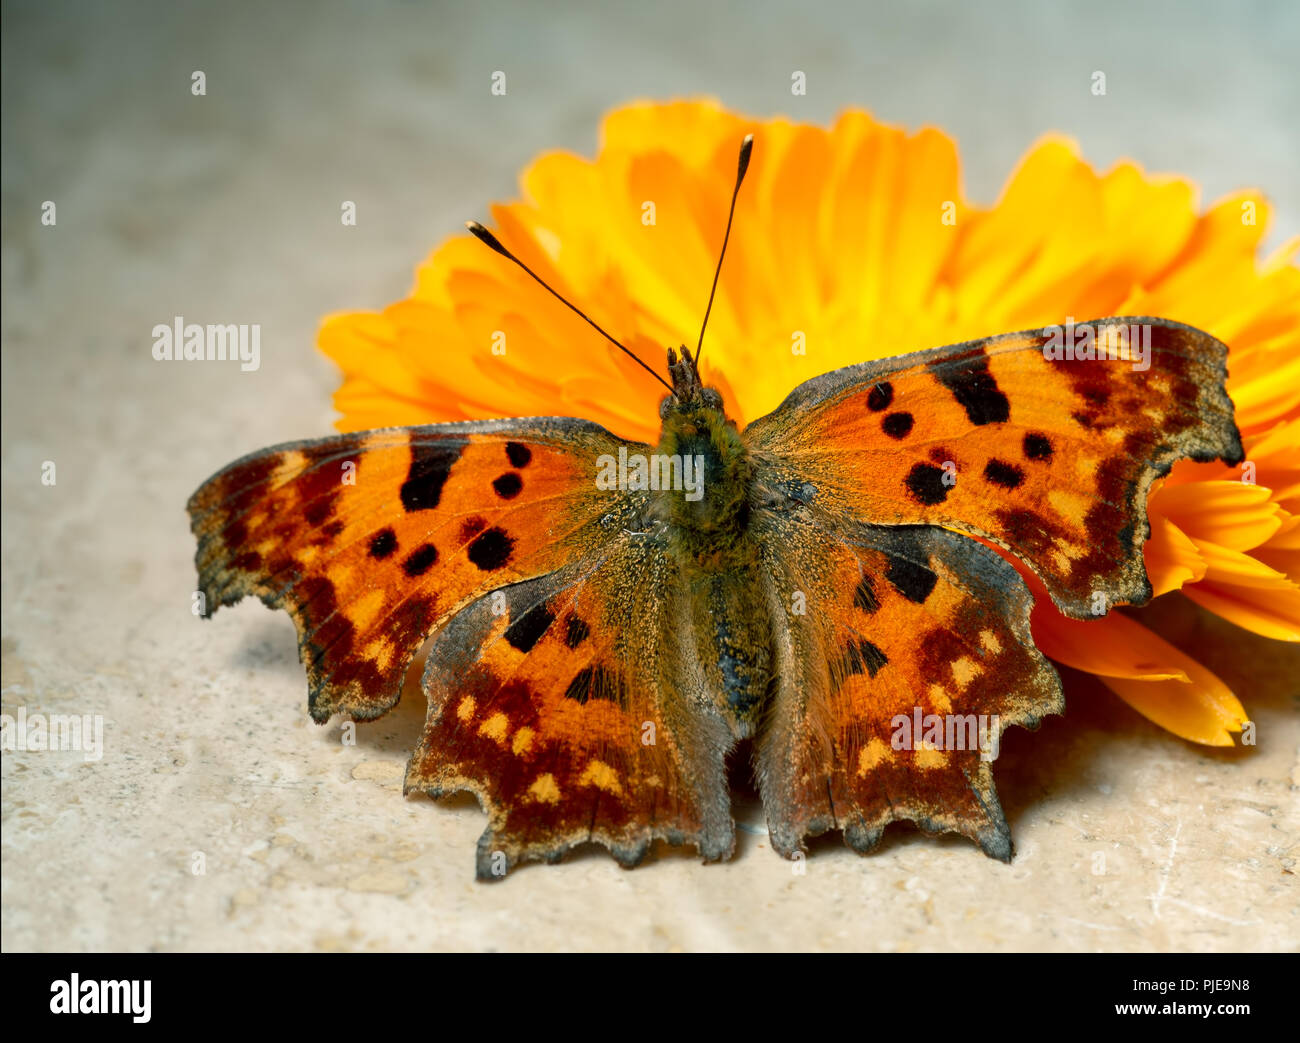 Comma Butterfly, Polygonia c-album, with a marigold flower in sunshine. Note this is a live butterfly, healthy mainly fluttering at the time  - Stock Image